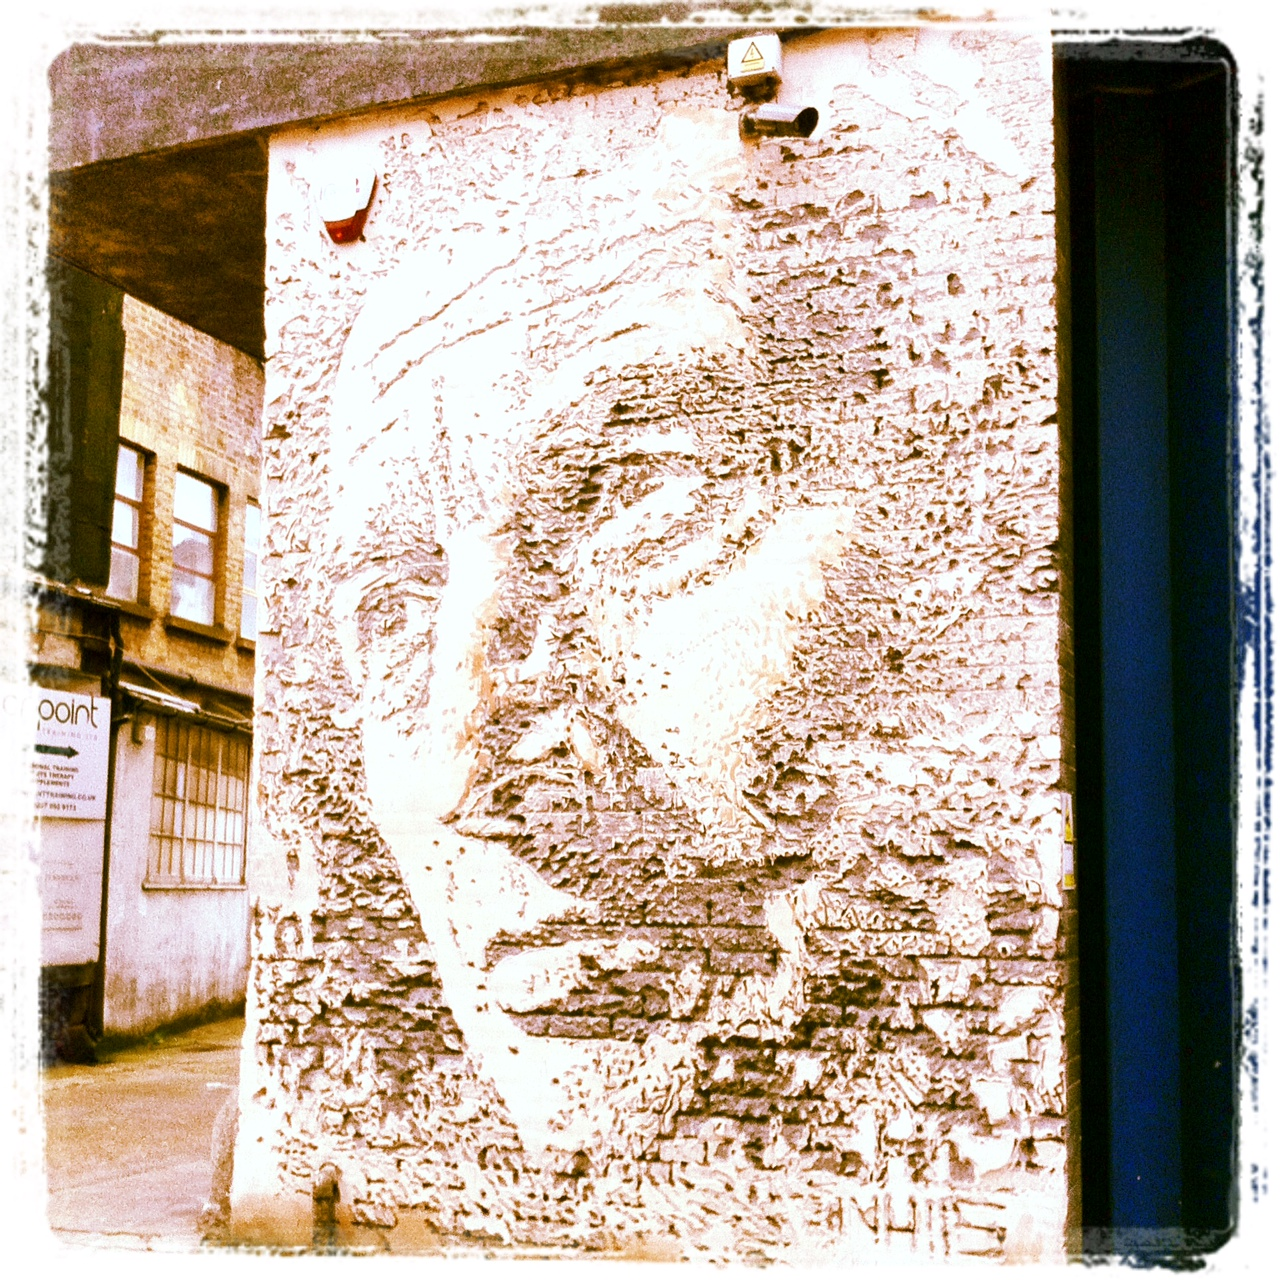 Piece by Vhils in Hewett Street, London